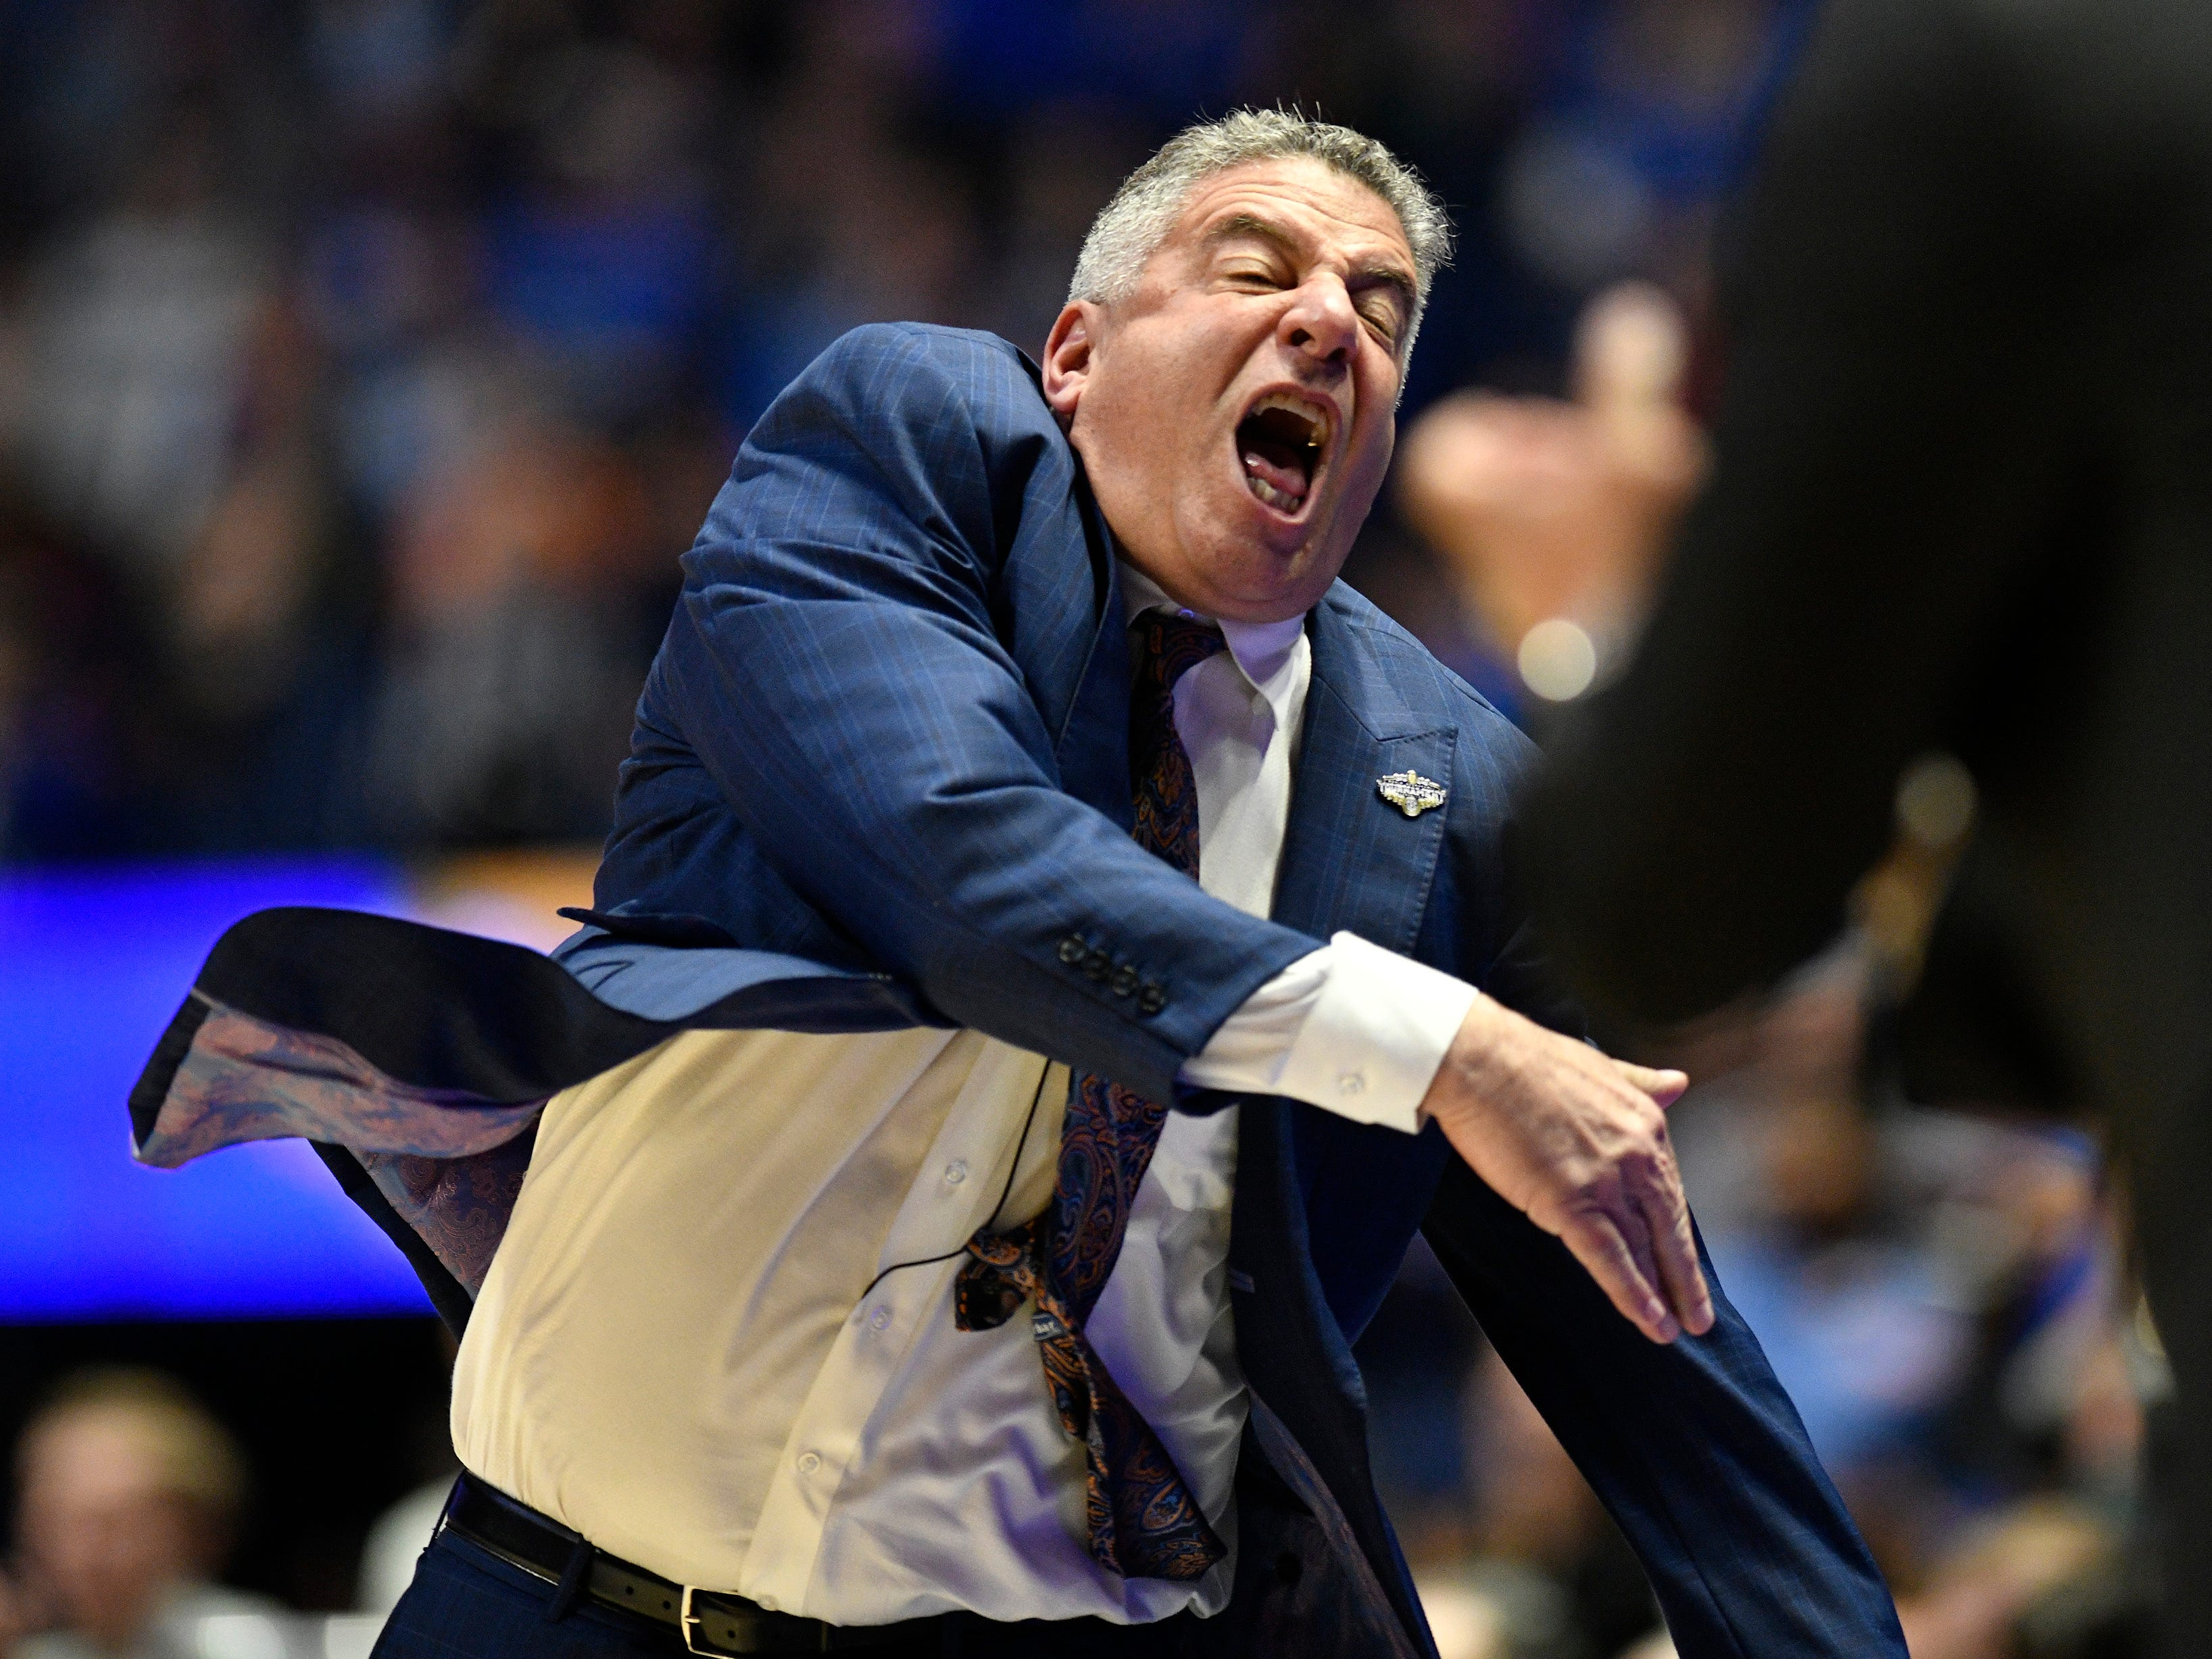 Auburn head coach Bruce Pearl reacts during the second half of the SEC Men's Basketball Tournament game against Florida at Bridgestone Arena in Nashville, Tenn., Saturday, March 16, 2019.